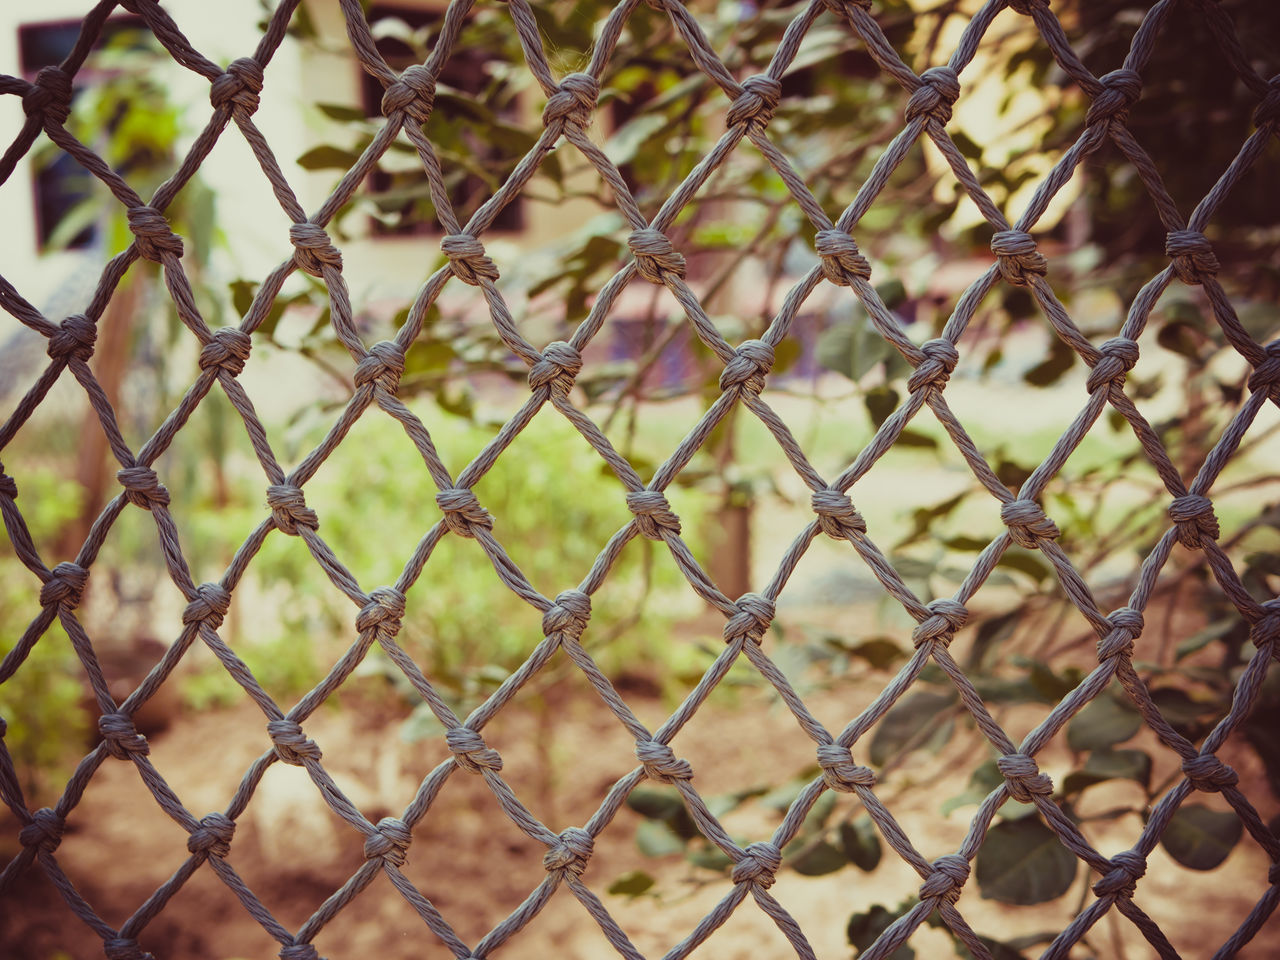 Protection Focus On Foreground Grating Net Trammel Sqare Multi Sqare Rope Net Rope Sqare Focus On Foreground